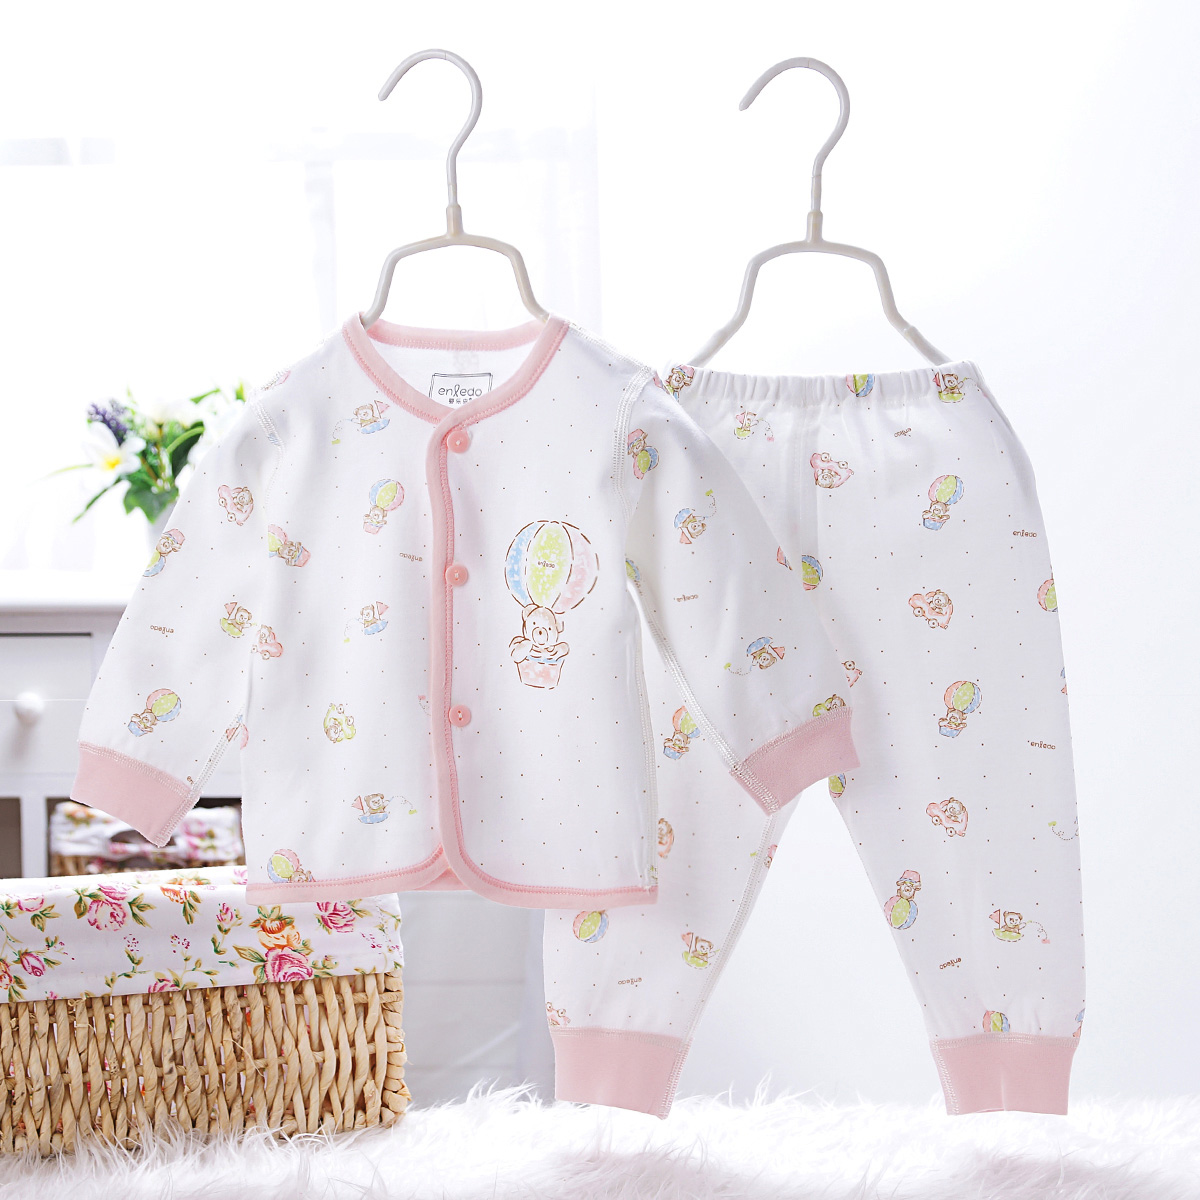 34bd01131481 Buy Newborn baby clothes newborn baby underwear autumn clothes suit long  sleeve spring models cotton baby suits for men and women in Cheap Price on  ...